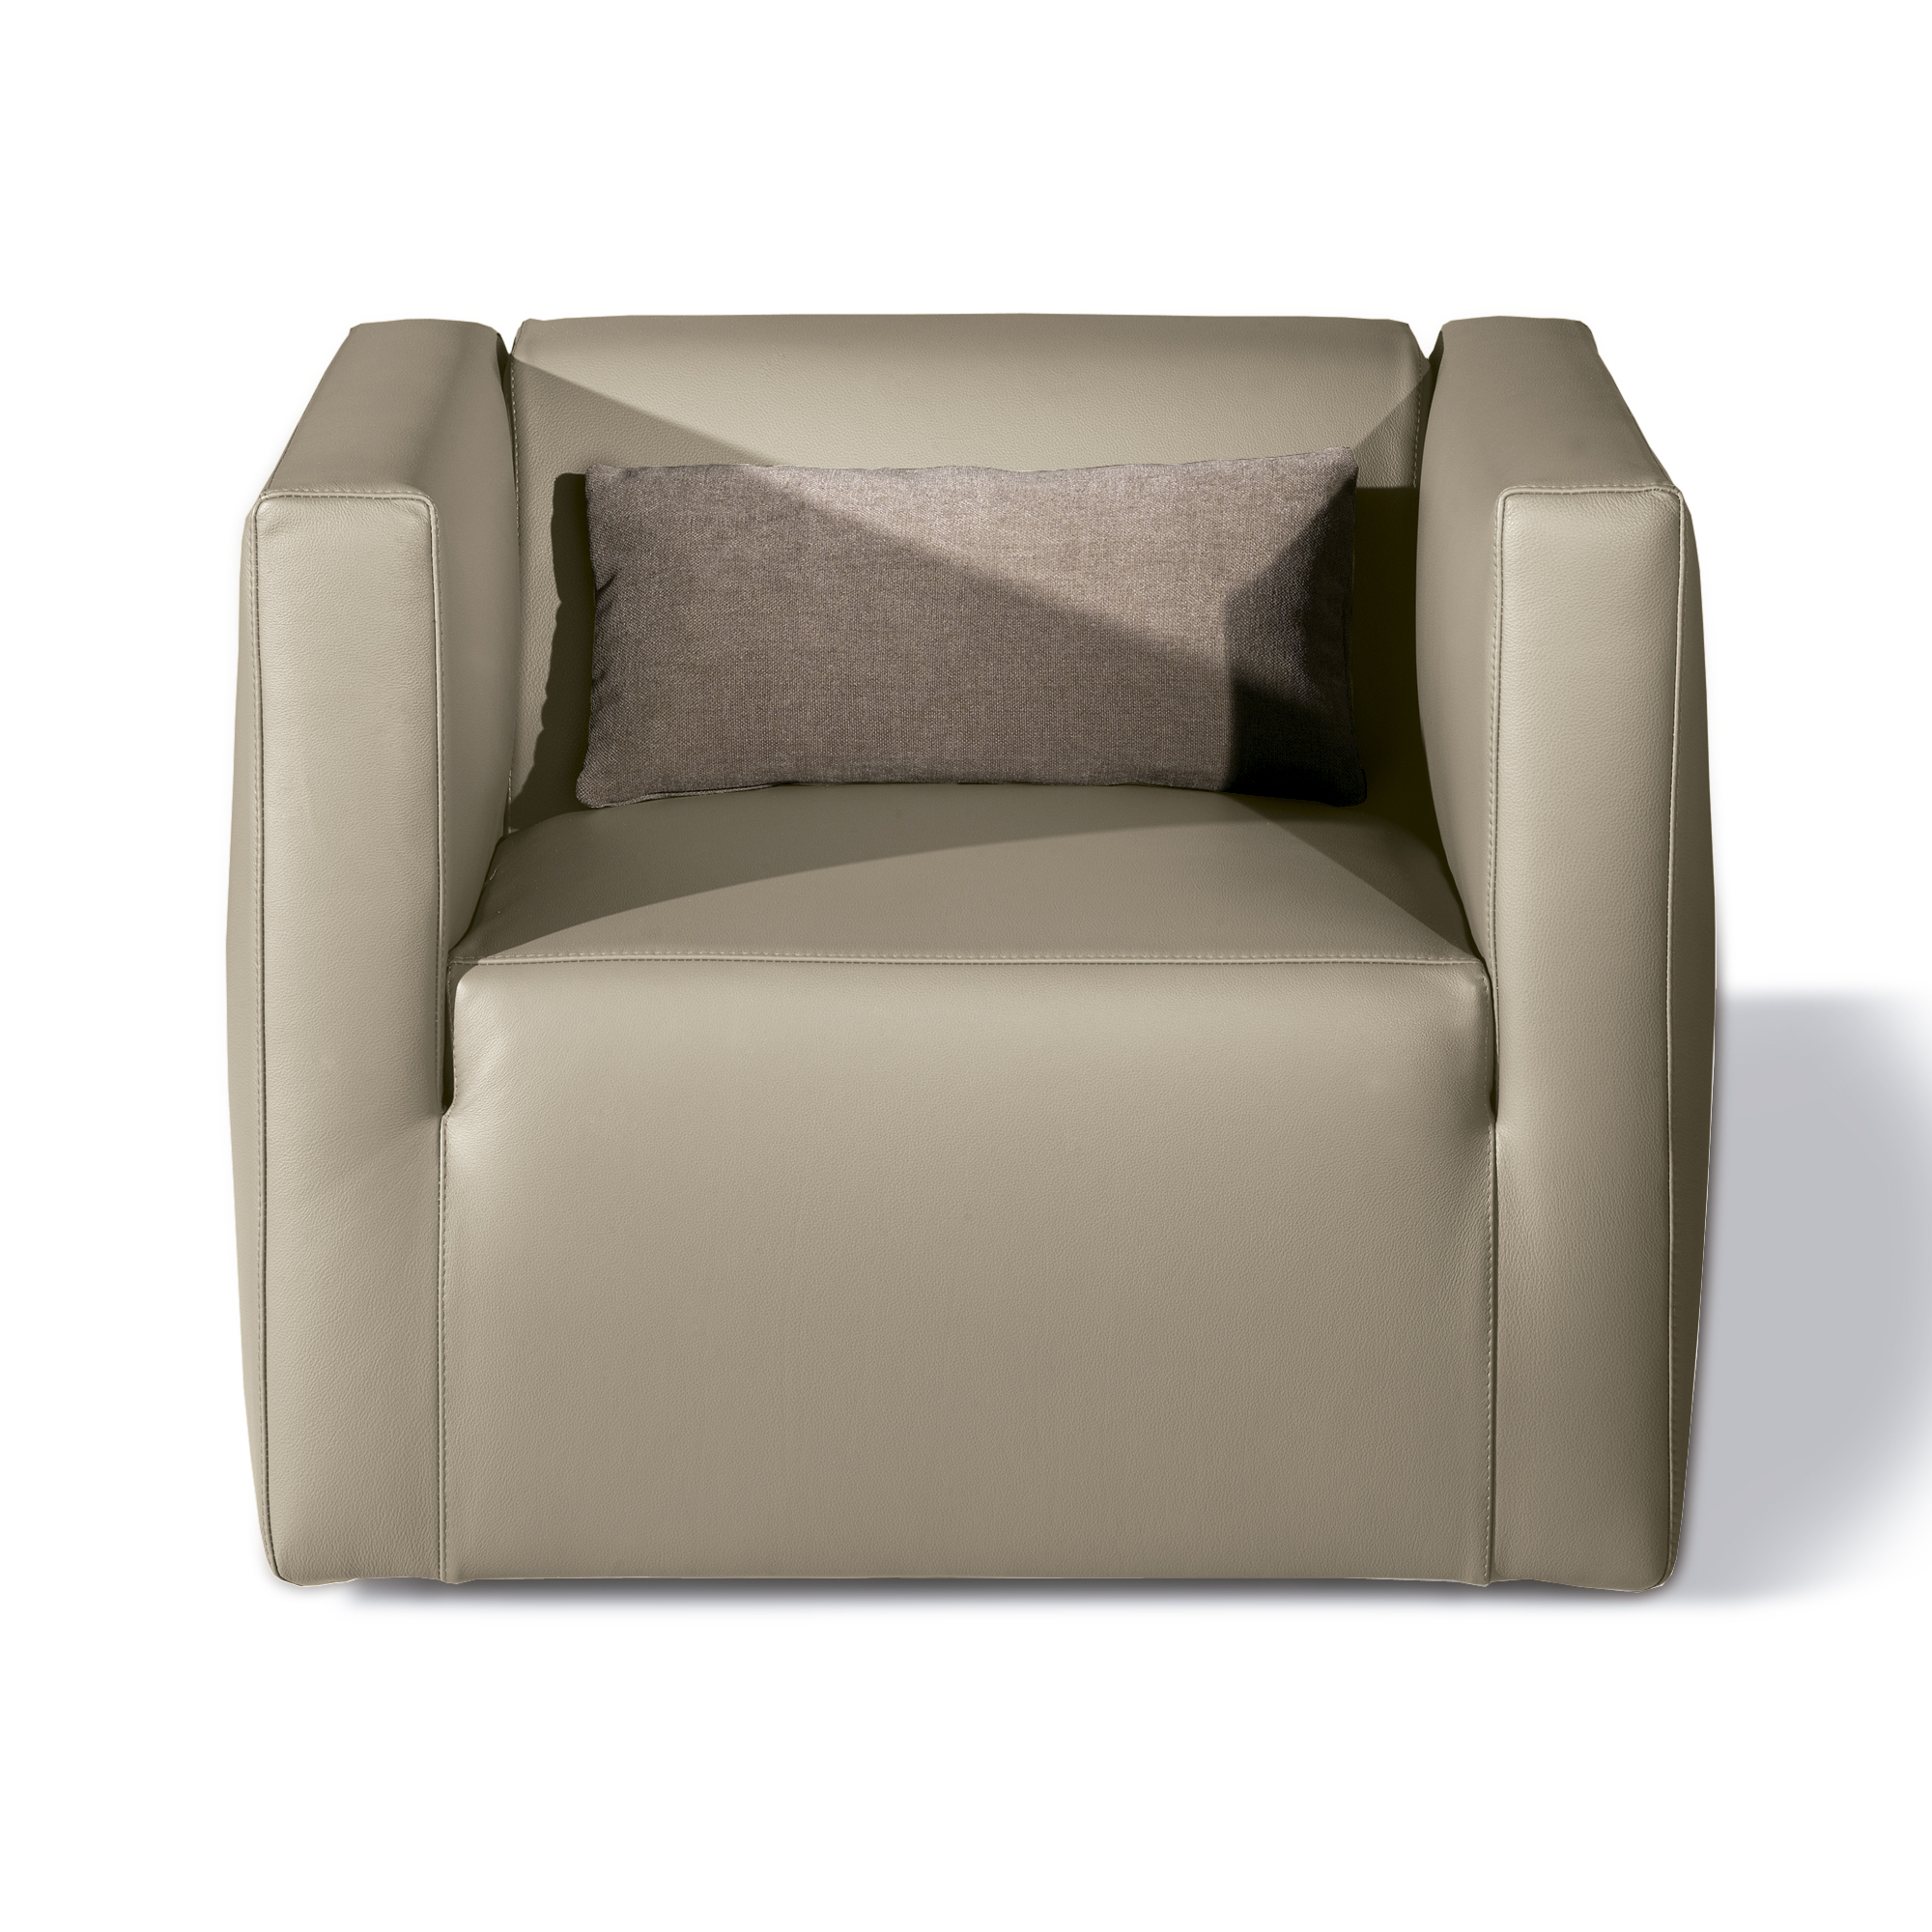 elba high end and classy lounge chair italian designer luxury